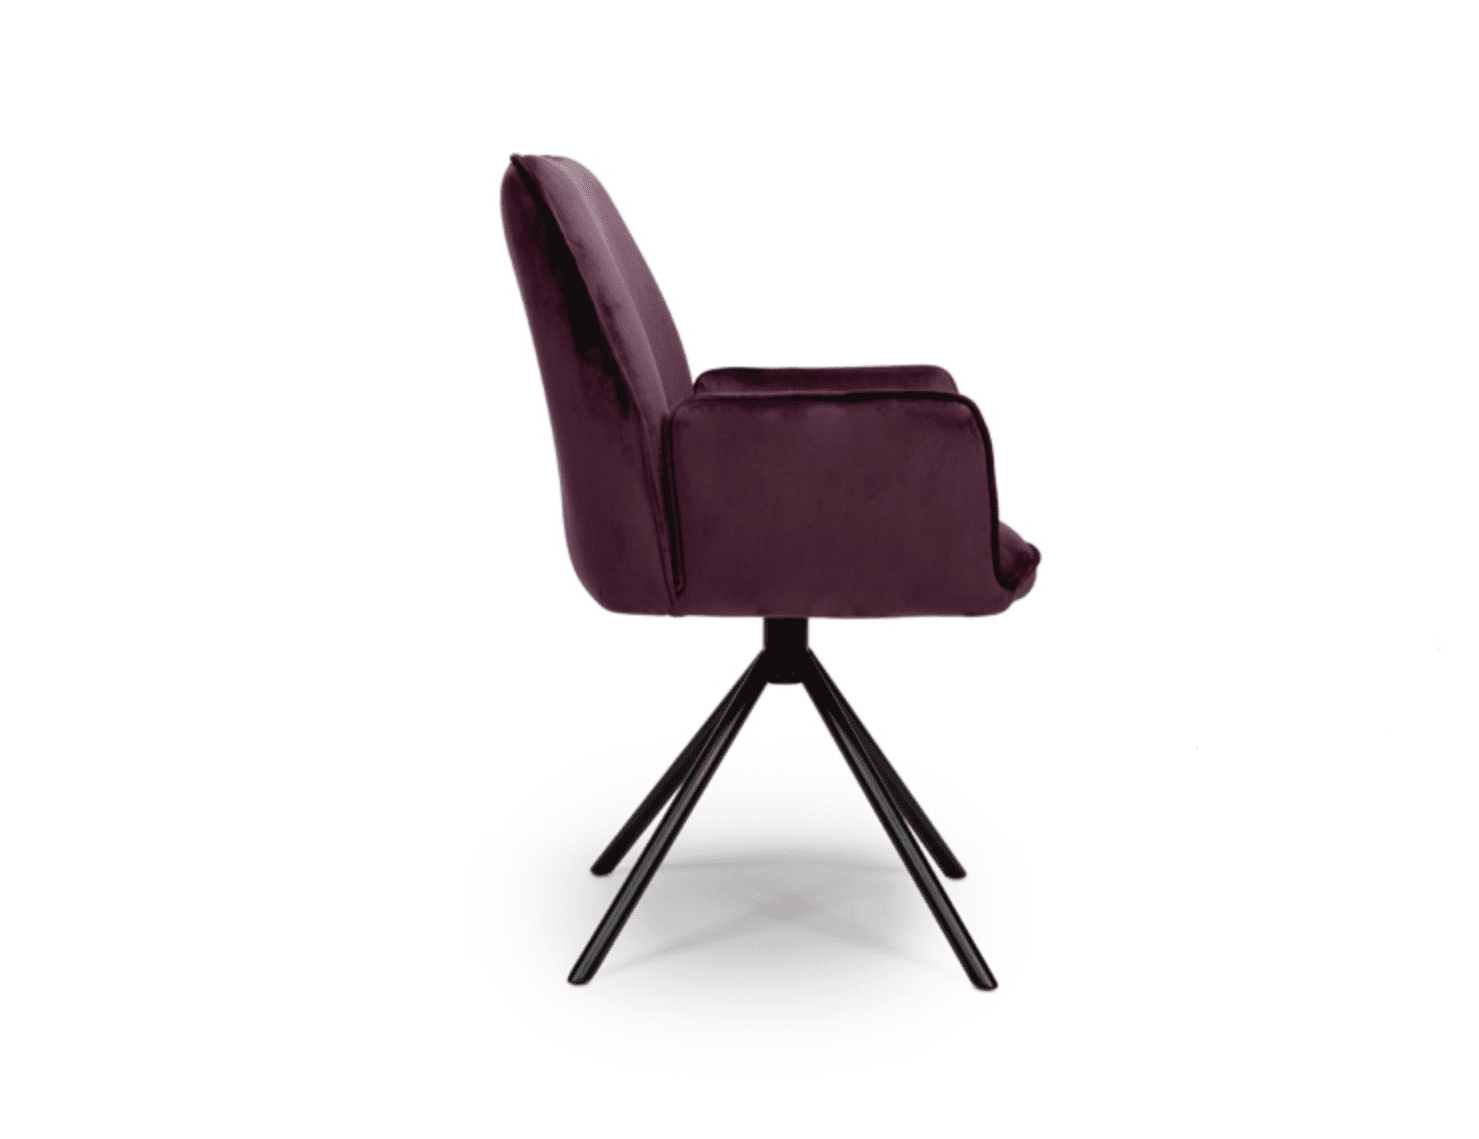 UNO chair mulberry side